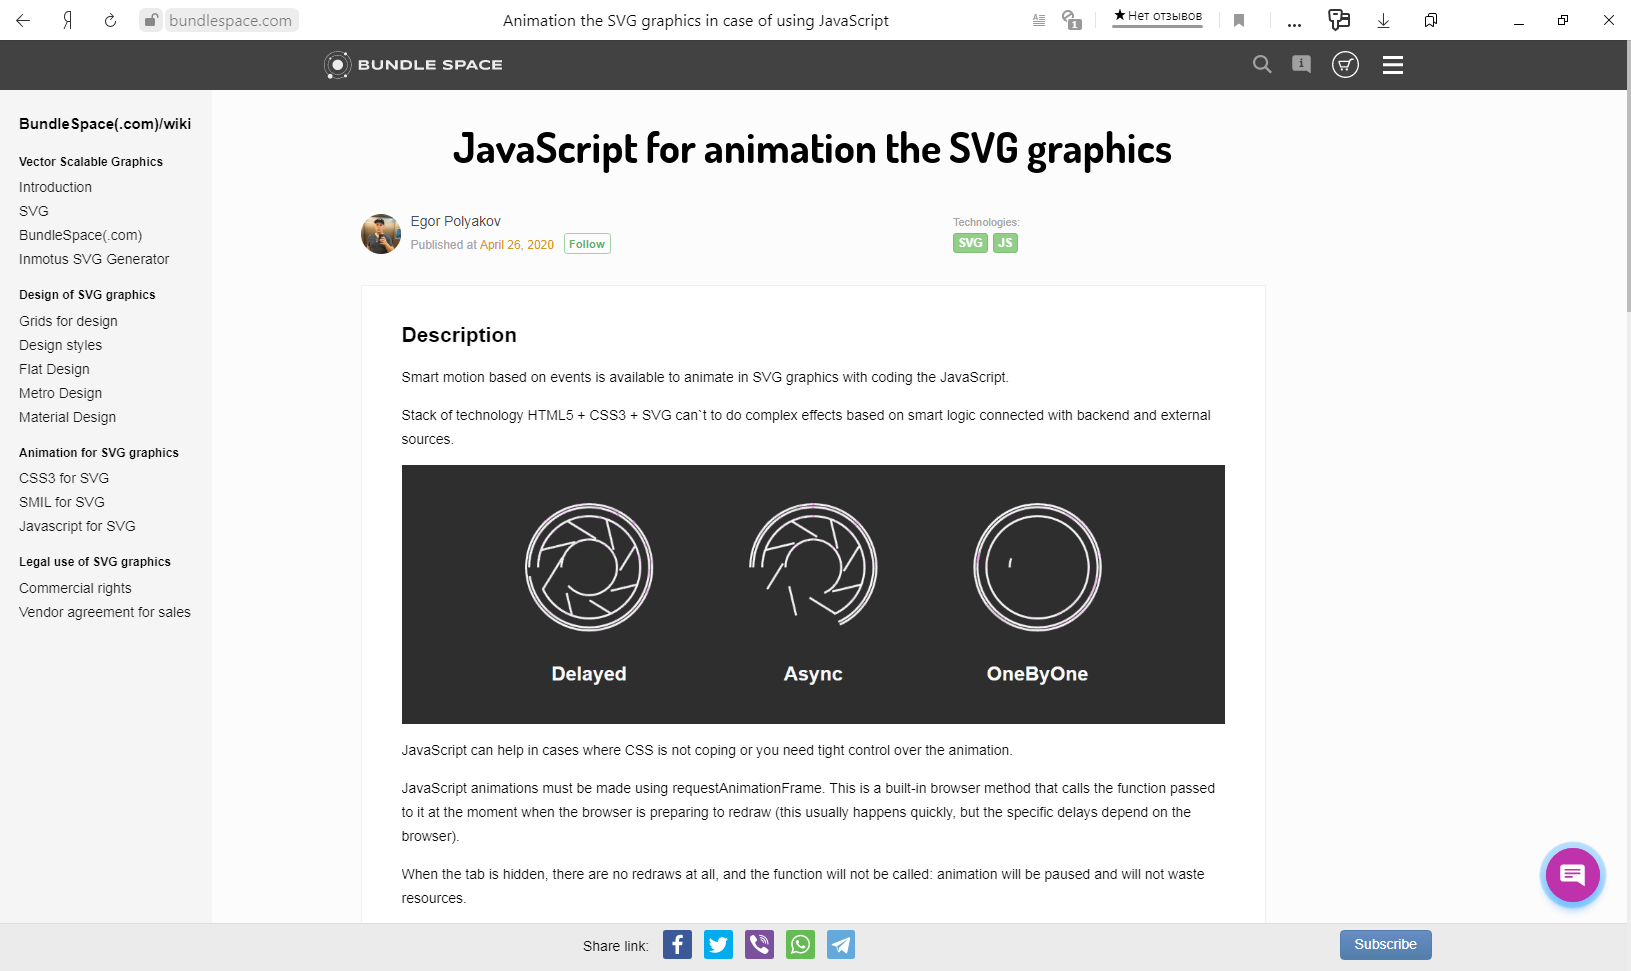 Wiki for SVG graphics